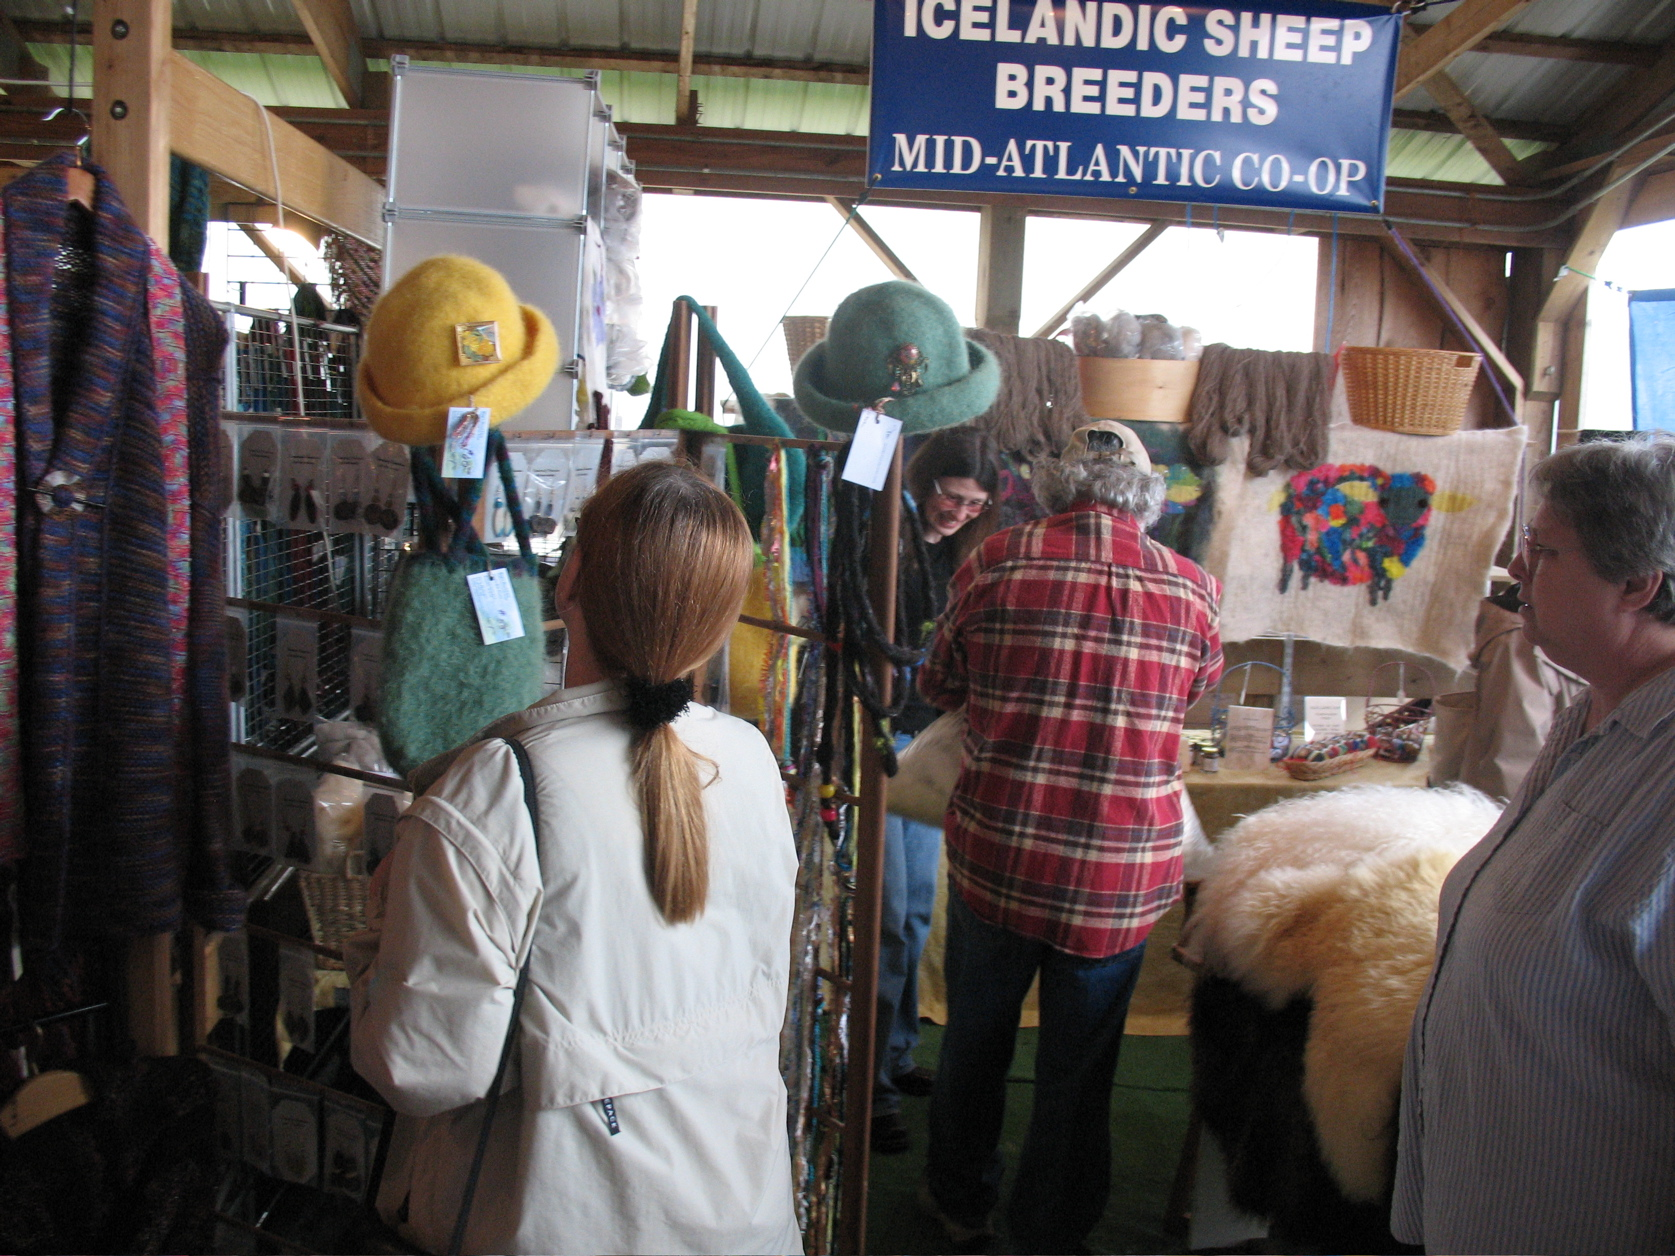 MDSW - Tamarack Farm Sheep & Wool